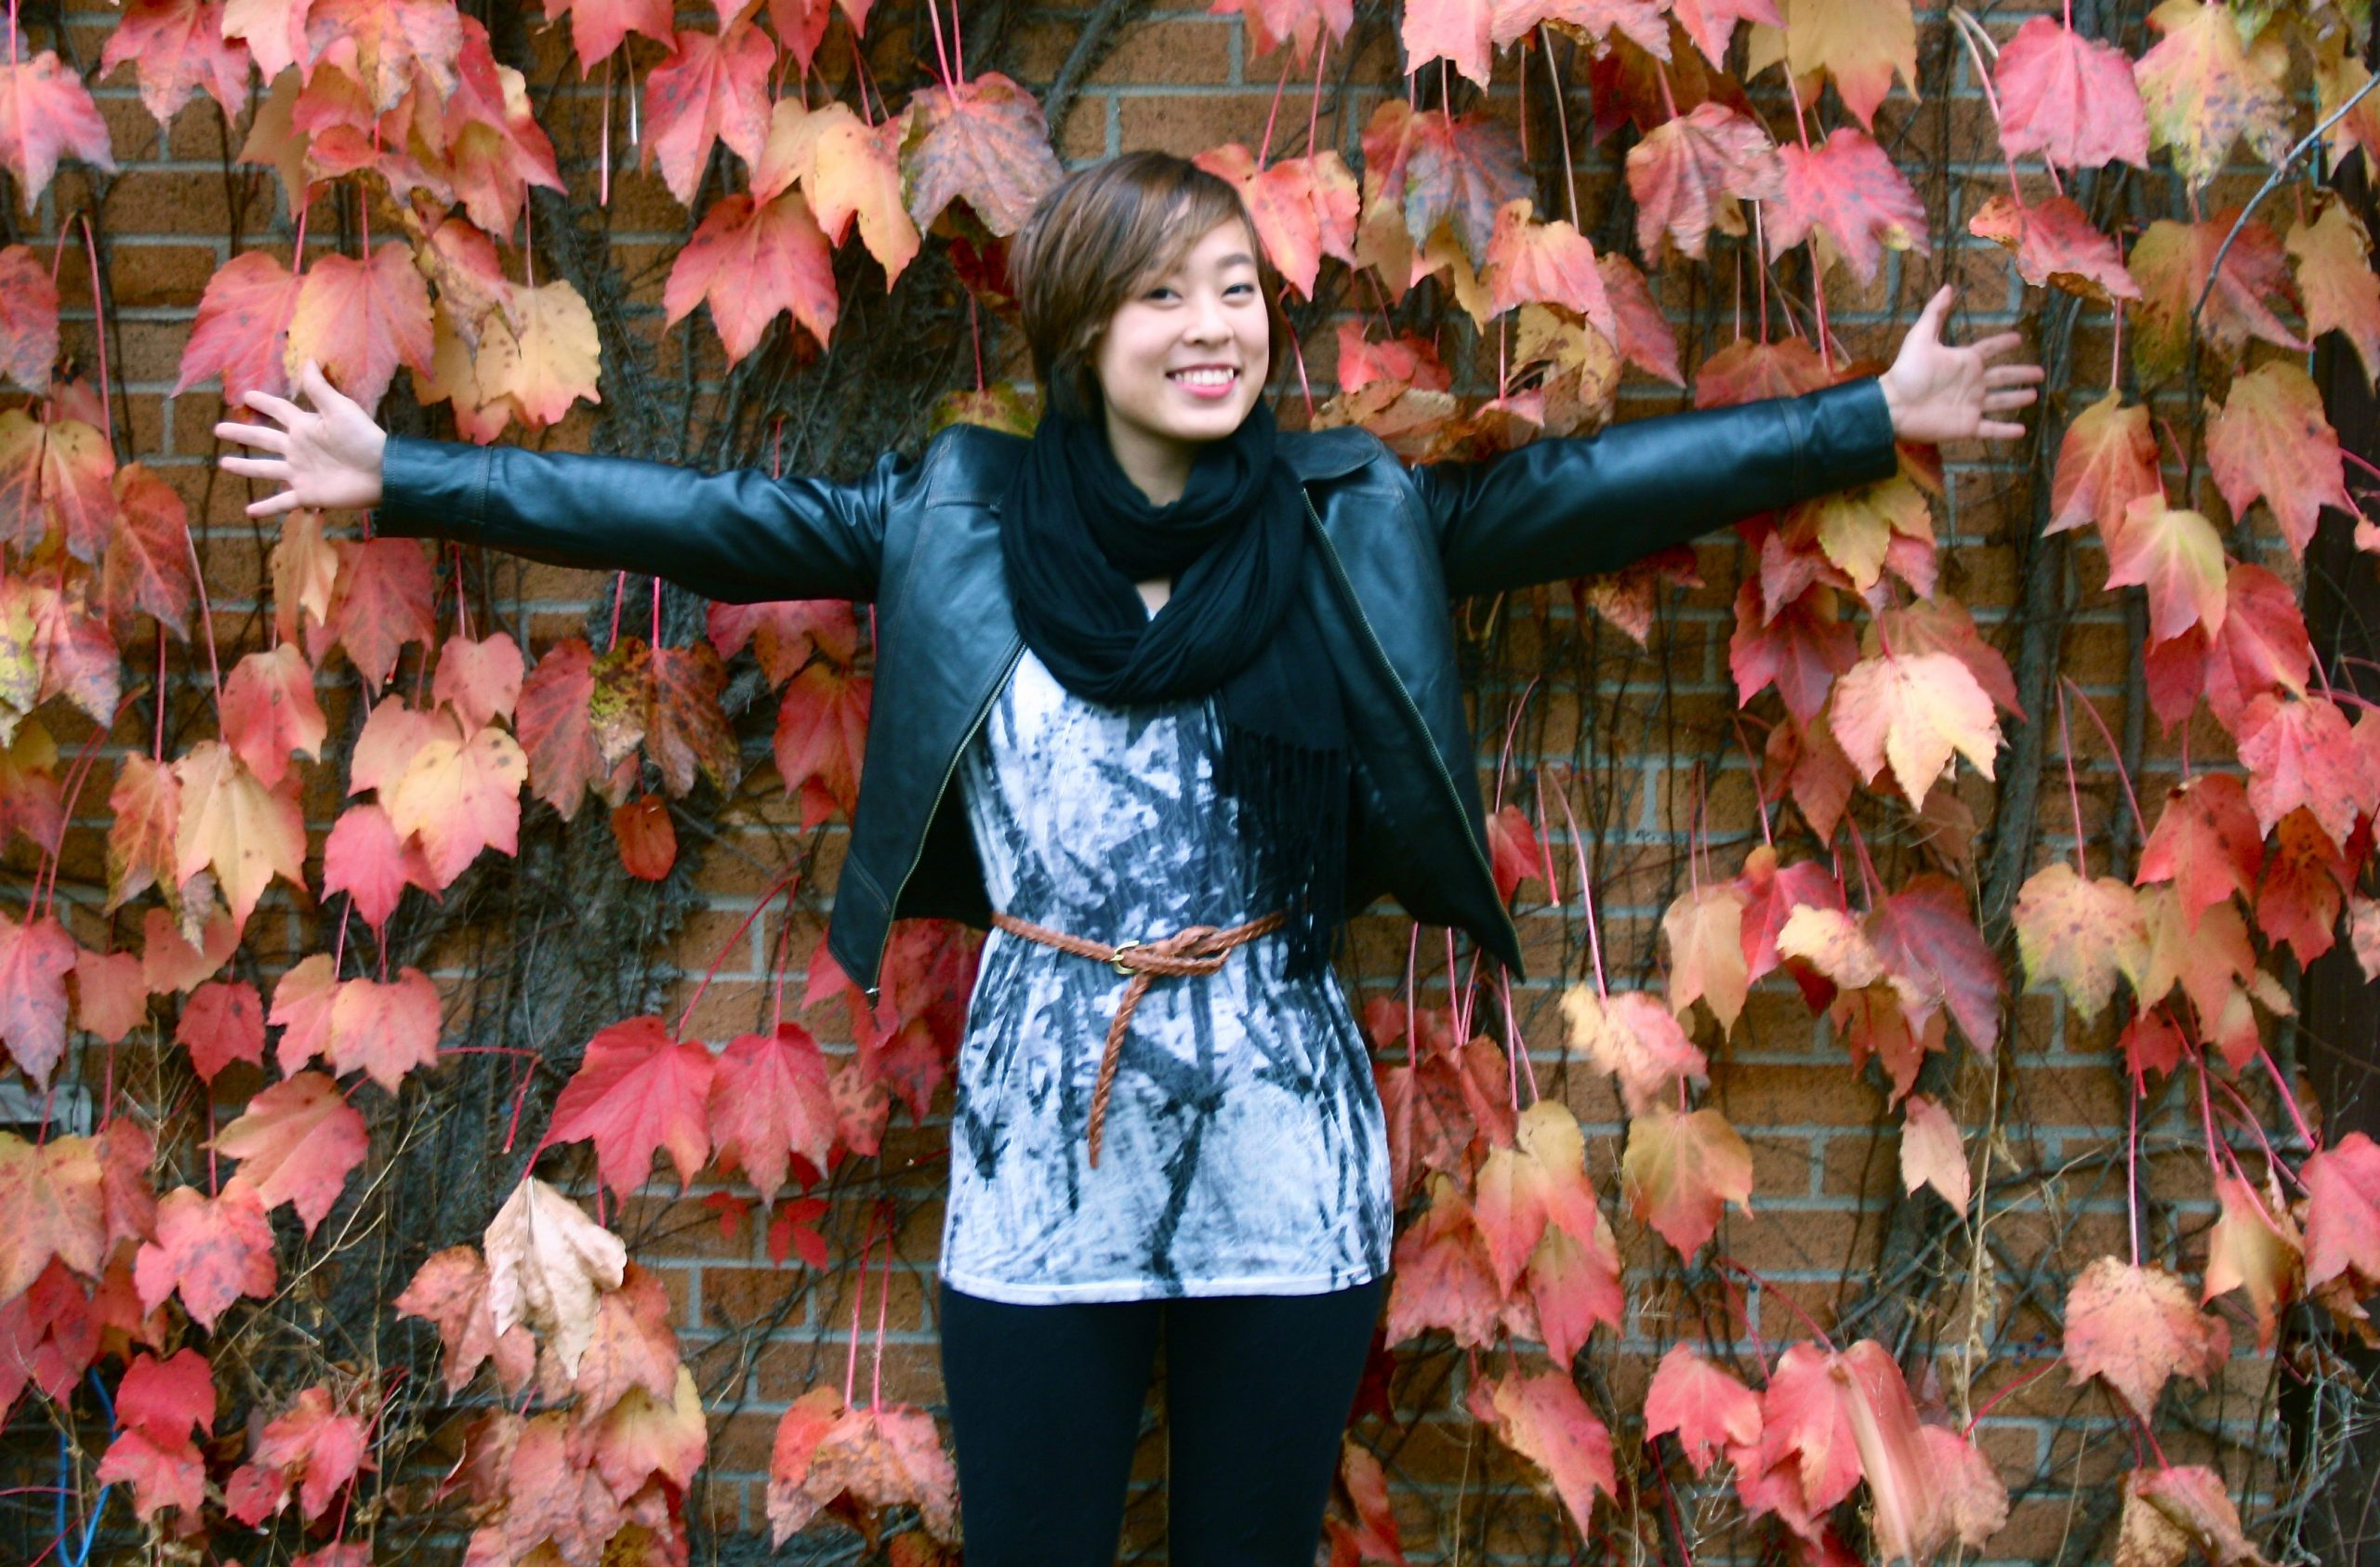 Ly Phuong Nguyen stands with arms outstretched in front of an ivy-covered wall on campus